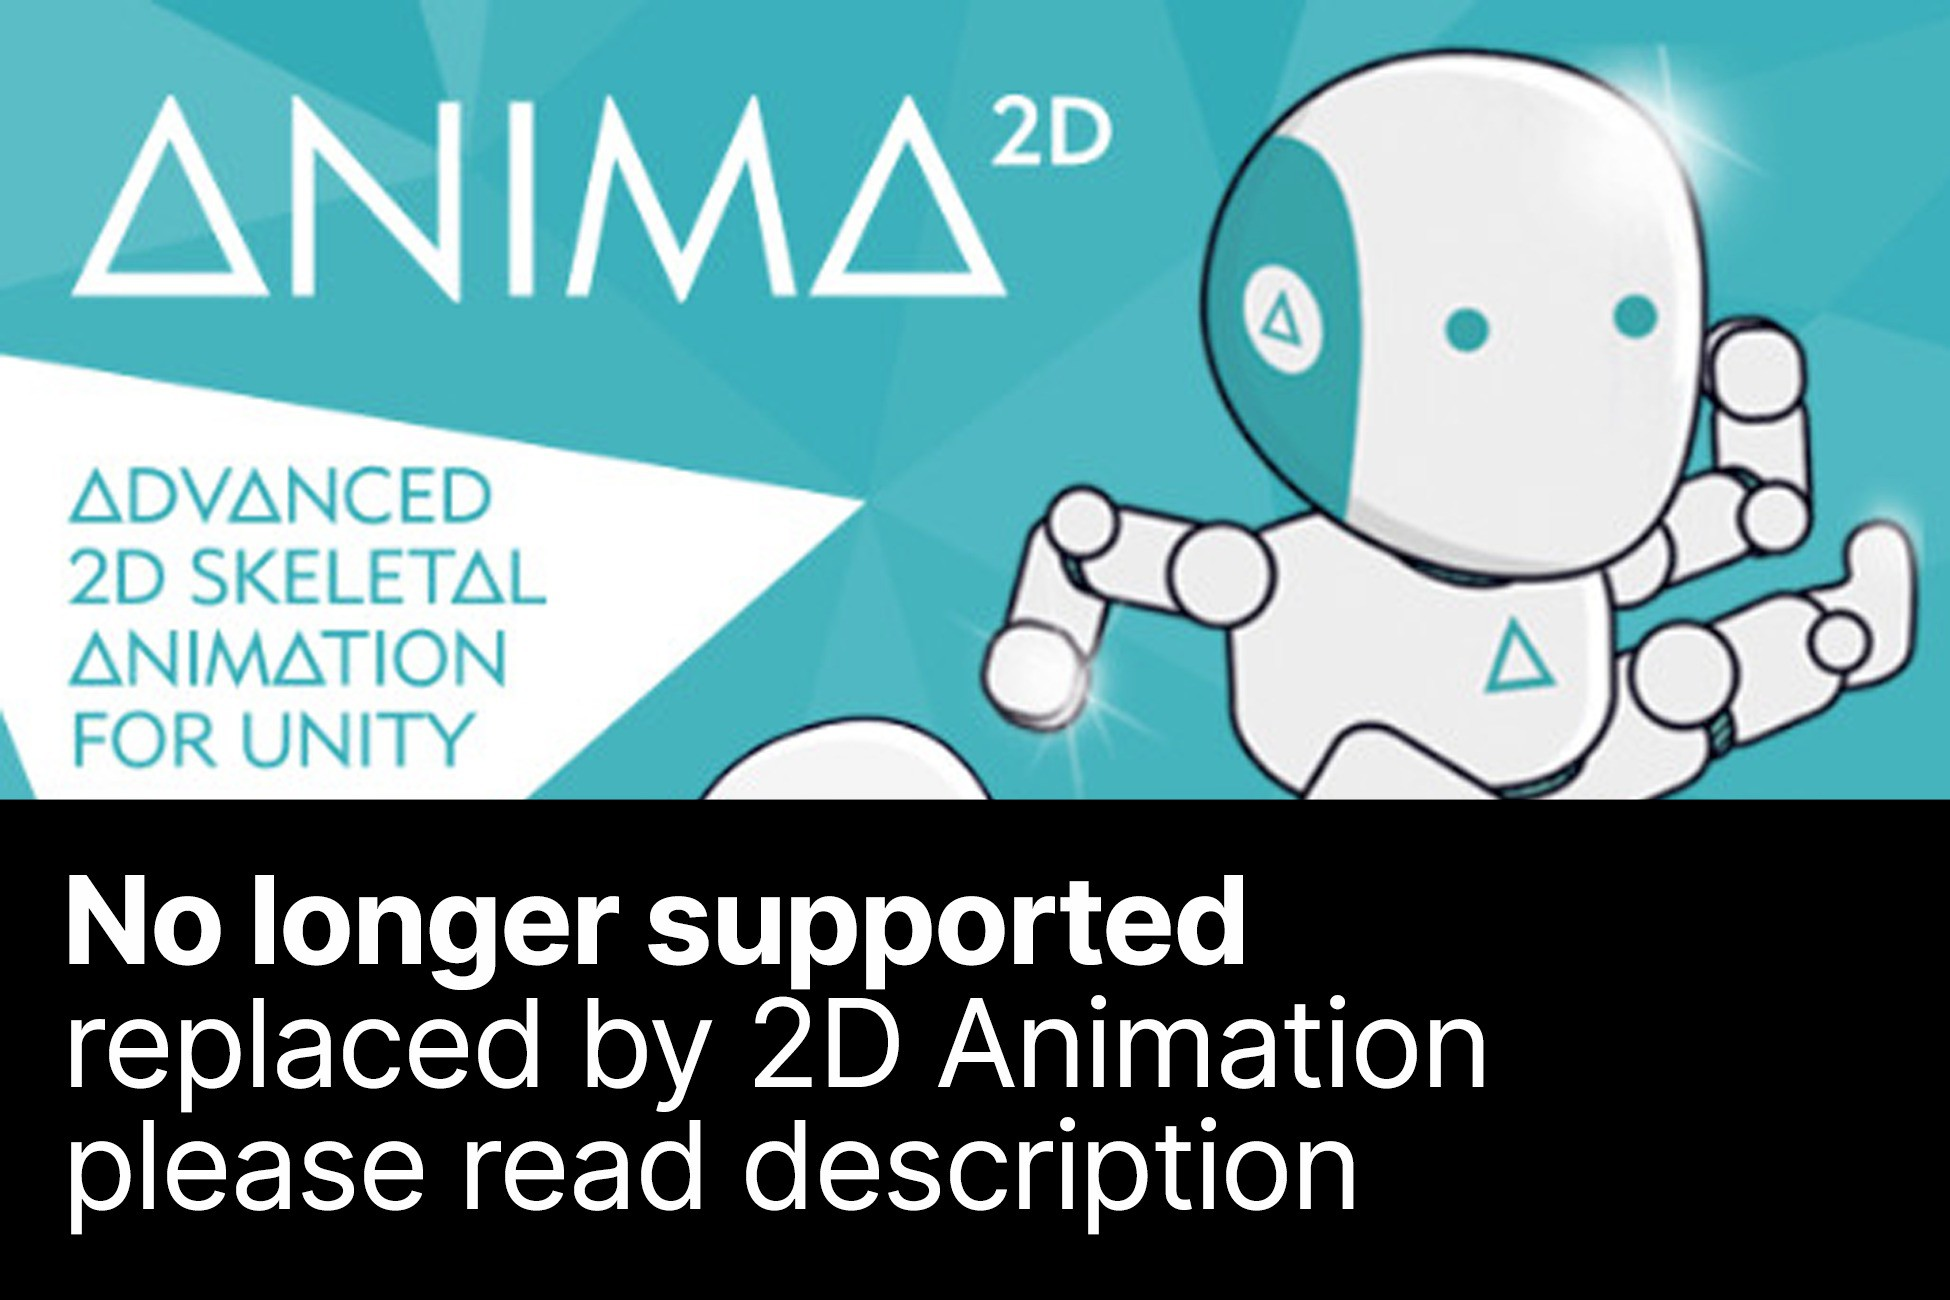 Anima2D (no longer supported, replaced by 2D Animation)